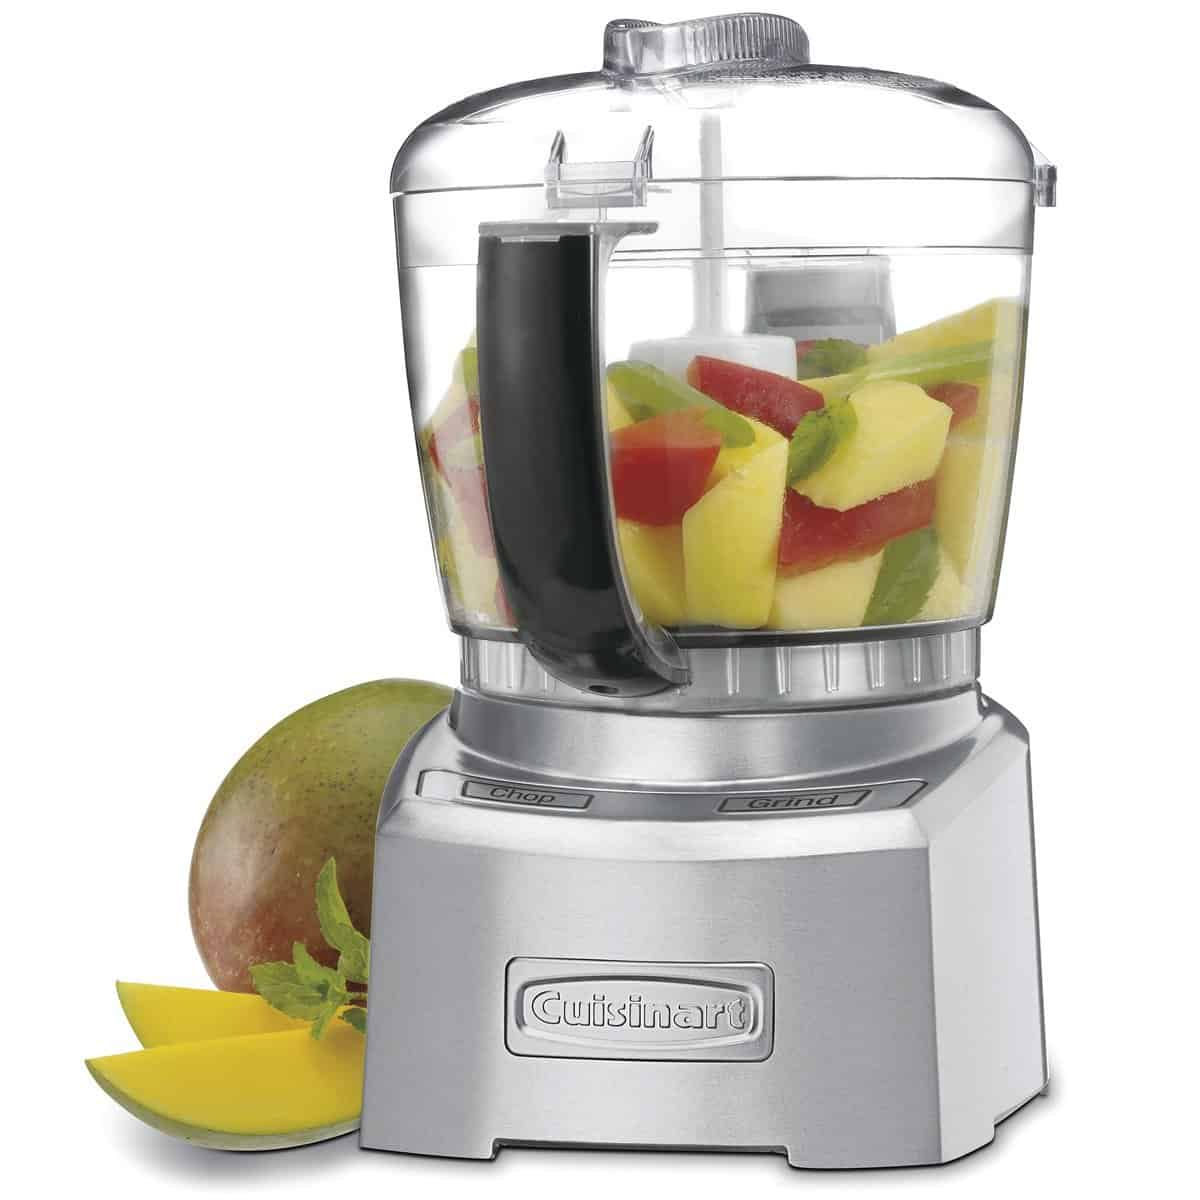 Food Processor review: Cuisinart